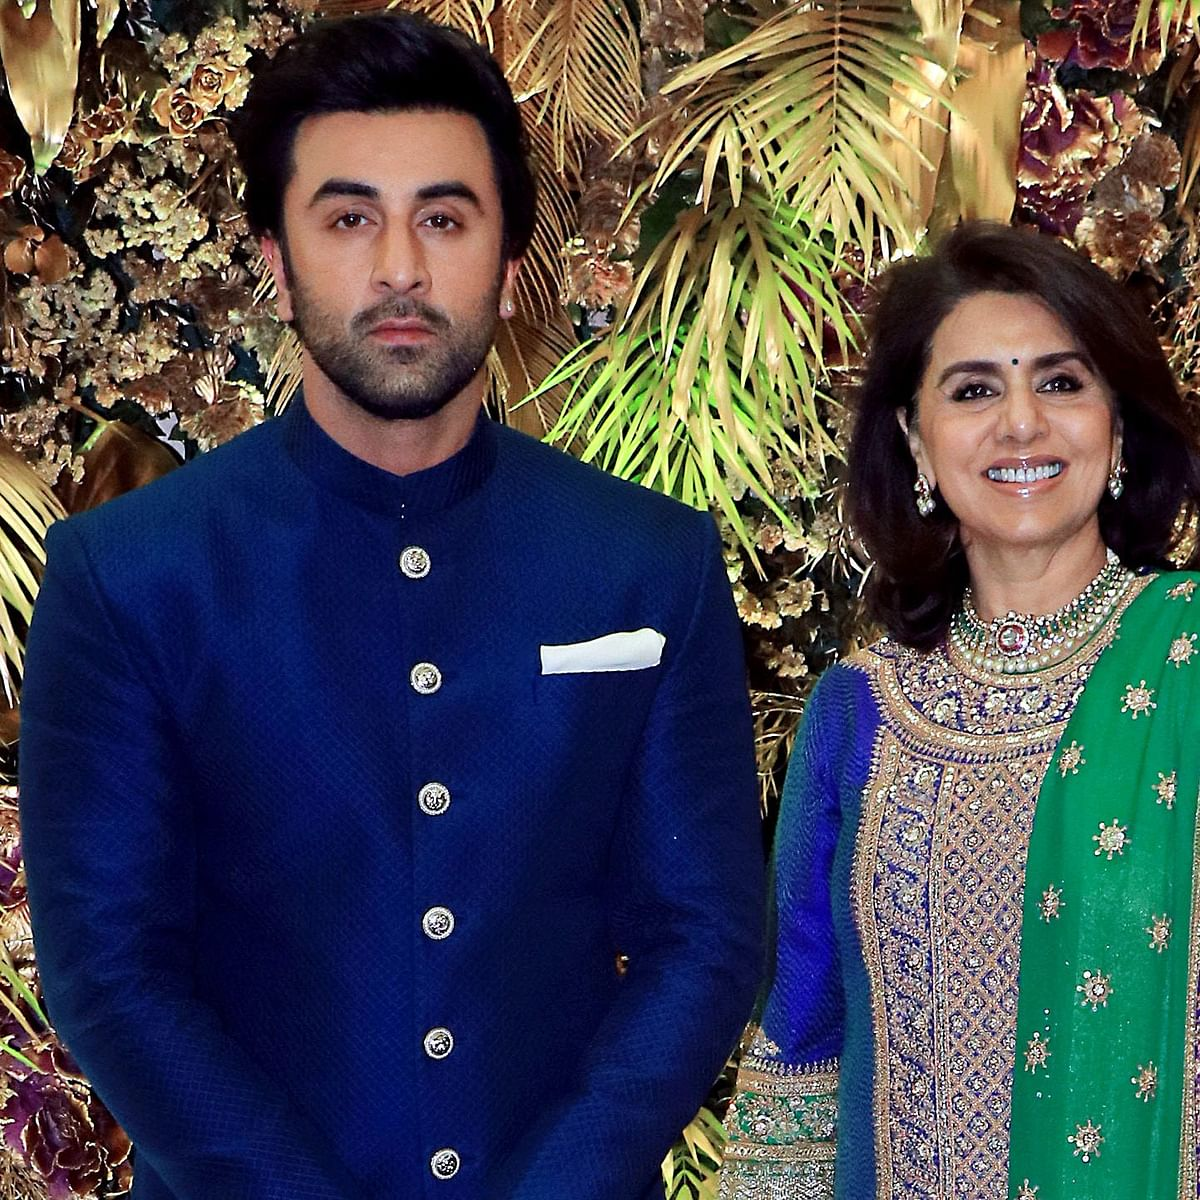 'Want to tick mark that goal very soon': Ranbir Kapoor reveals marriage plans with GF Alia Bhatt